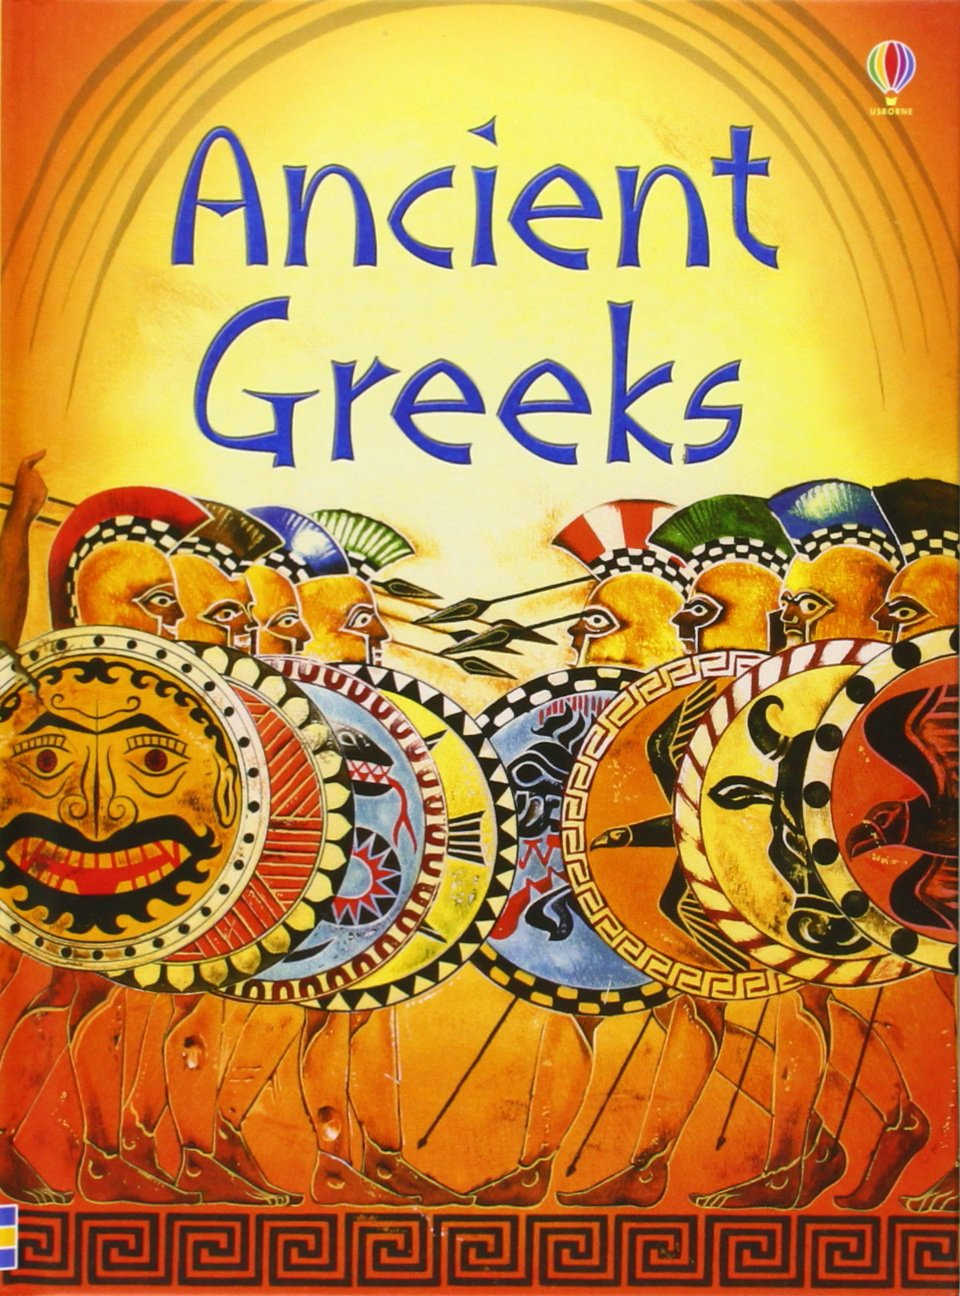 Ancient Greeks (Usborne Beginners): Amazon.co.uk: Stephanie ...